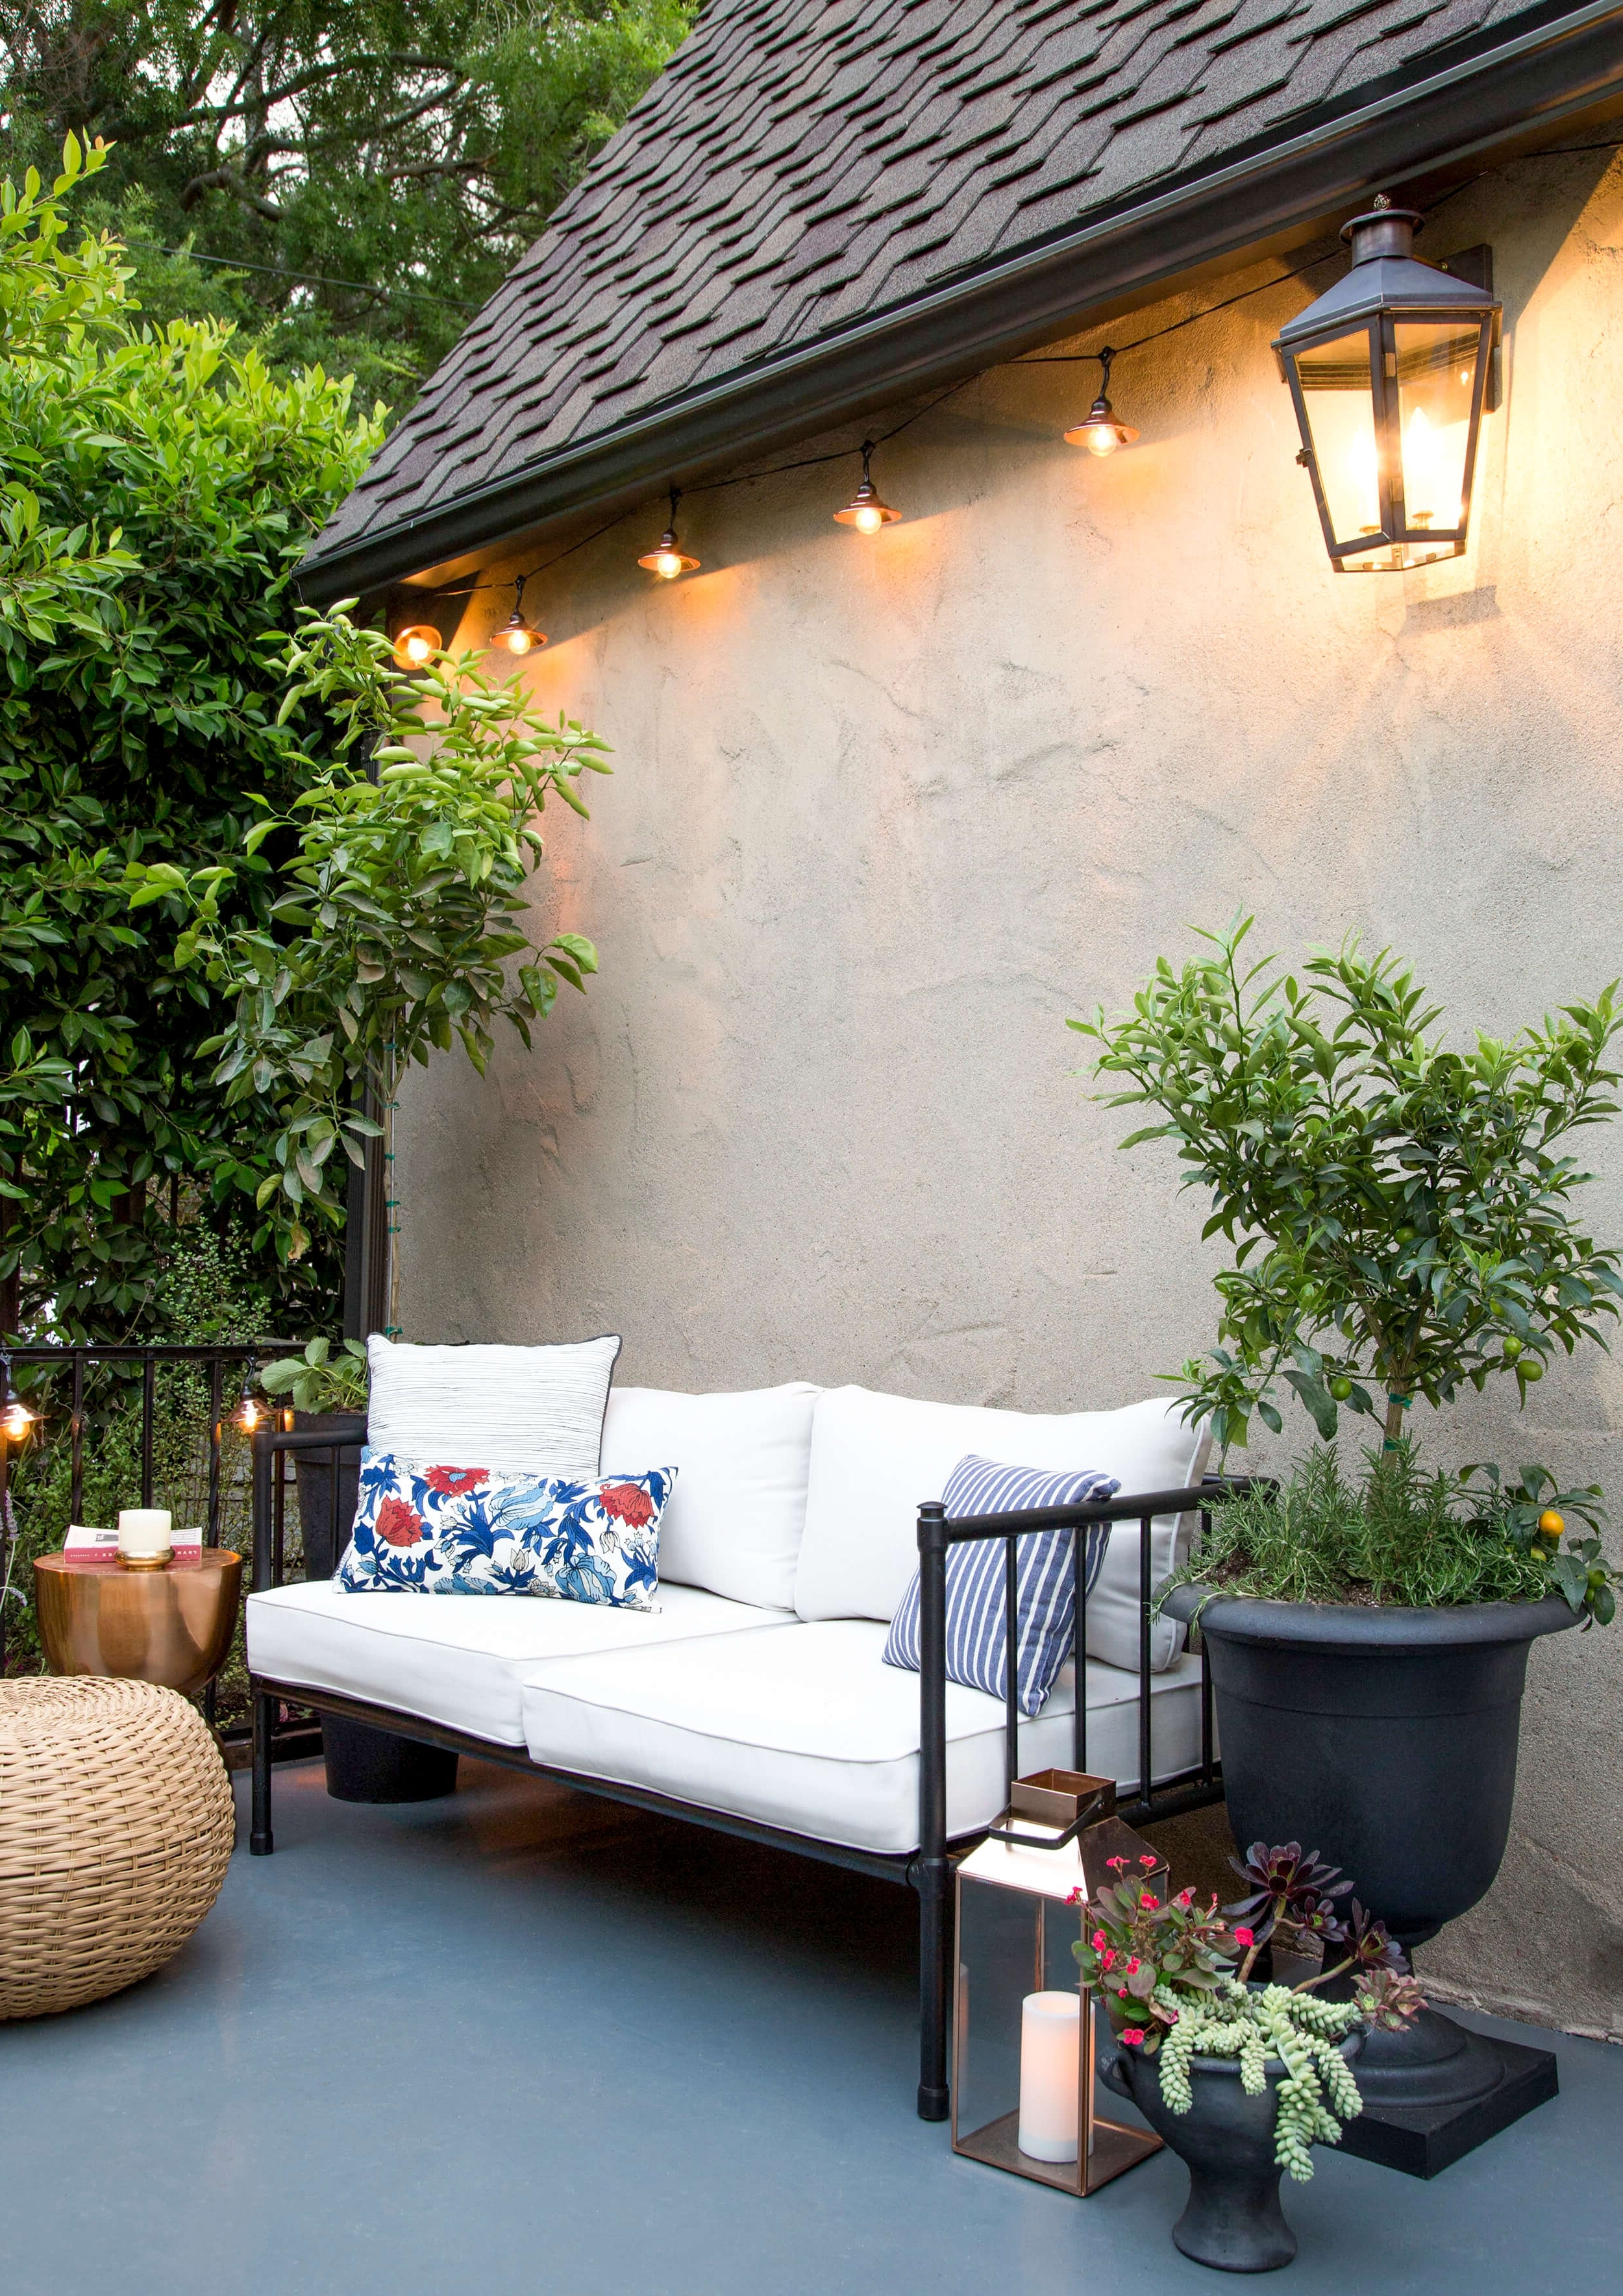 Preferred How To Decorate Your Outdoor Space (With All Target) – Emily Henderson With Contemporary Outdoor String Lights At Target (View 13 of 20)